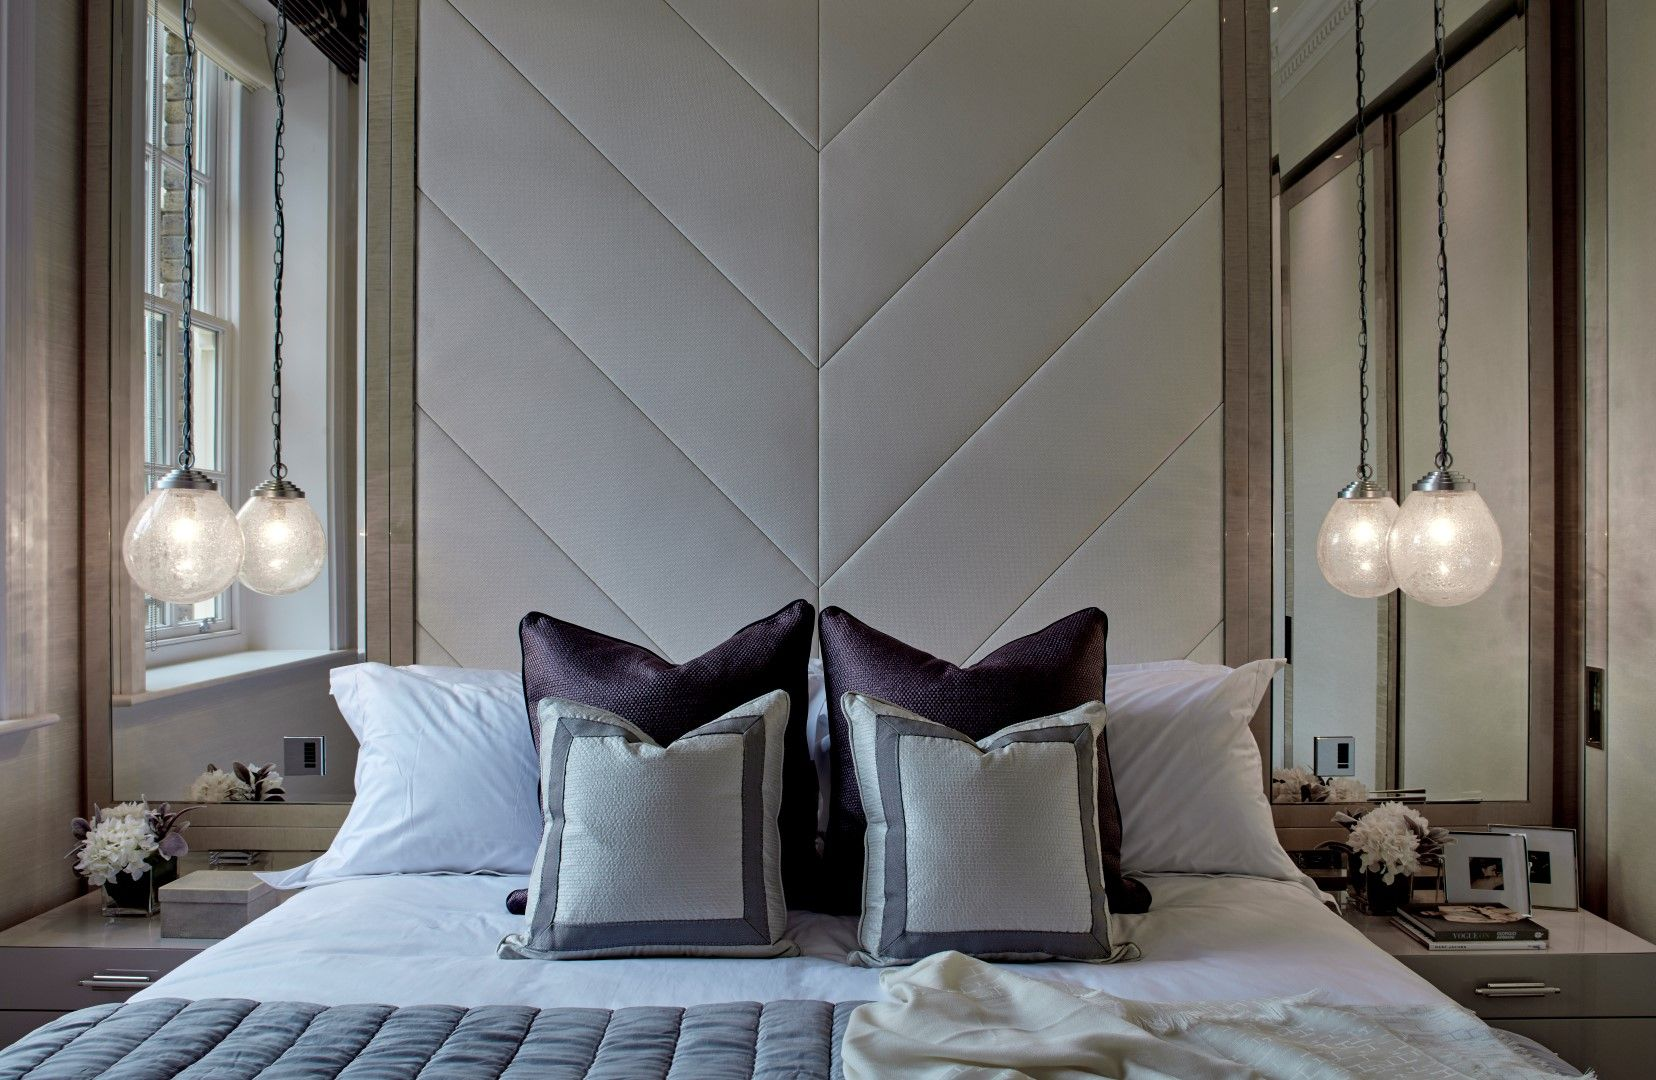 Elegant Upholstered Headboard, W/side Mirrors And Pendant